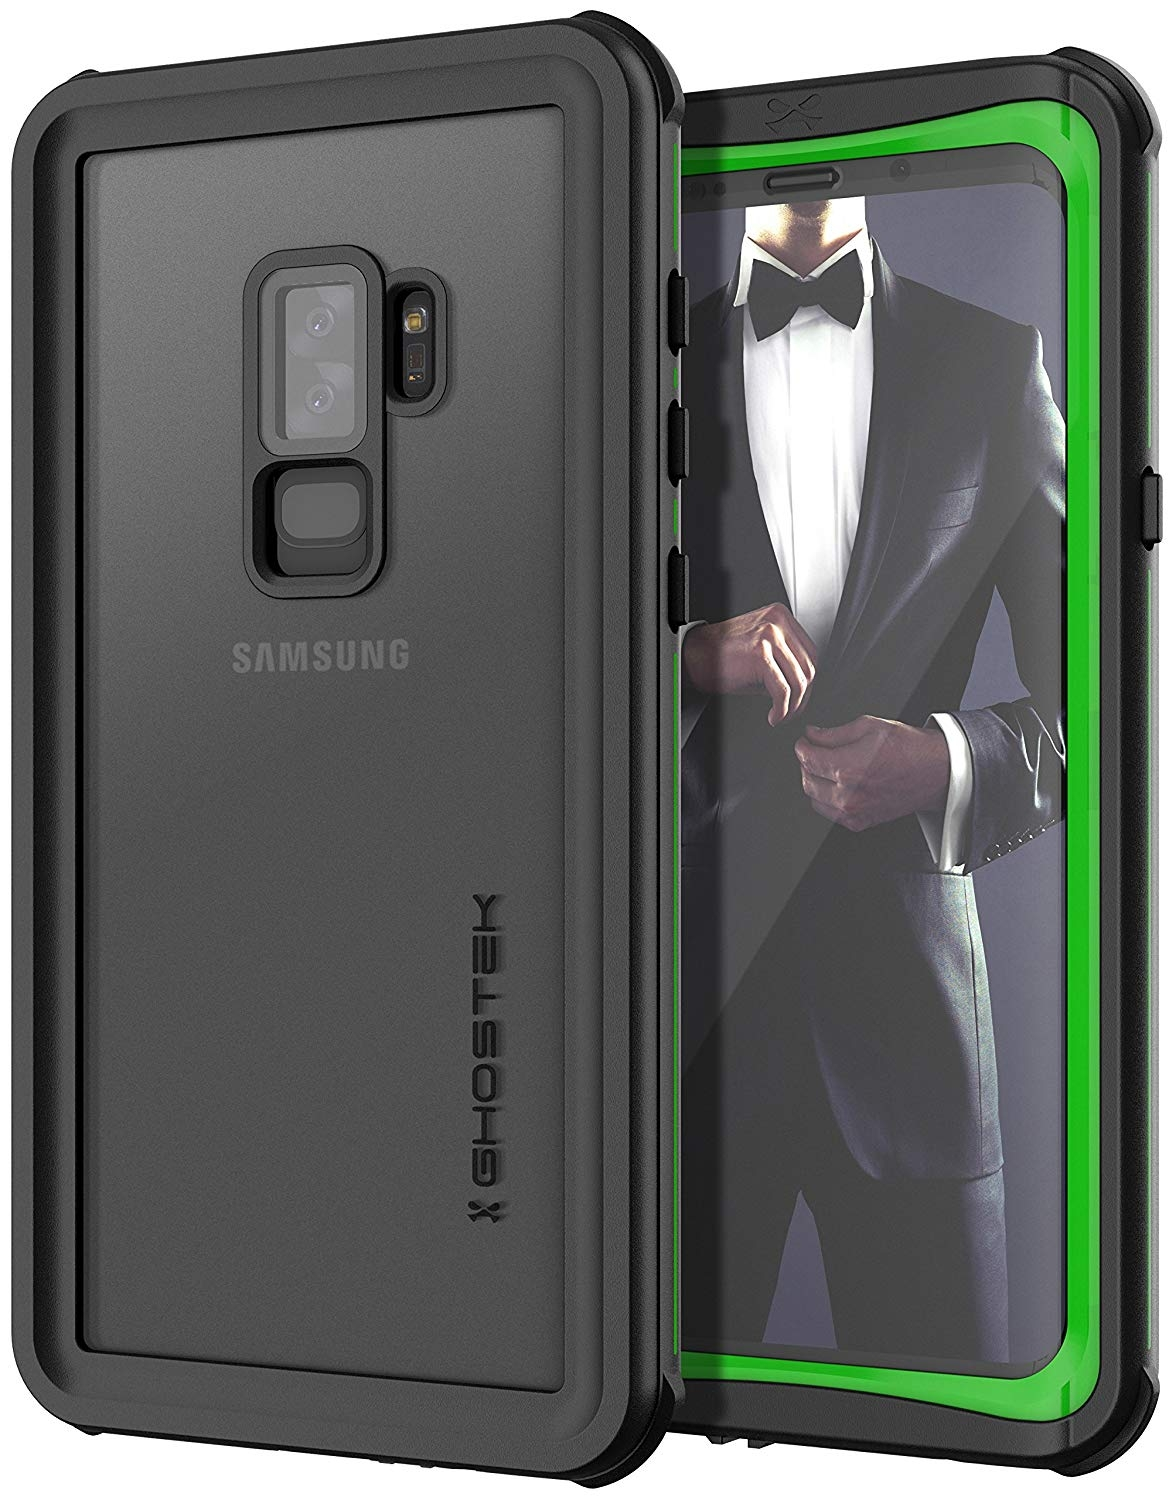 Ghostek Nautical 2 Αδιάβροχη Θήκη Samsung Galaxy S9 Plus - Green (CA-GHOCAS962-00)